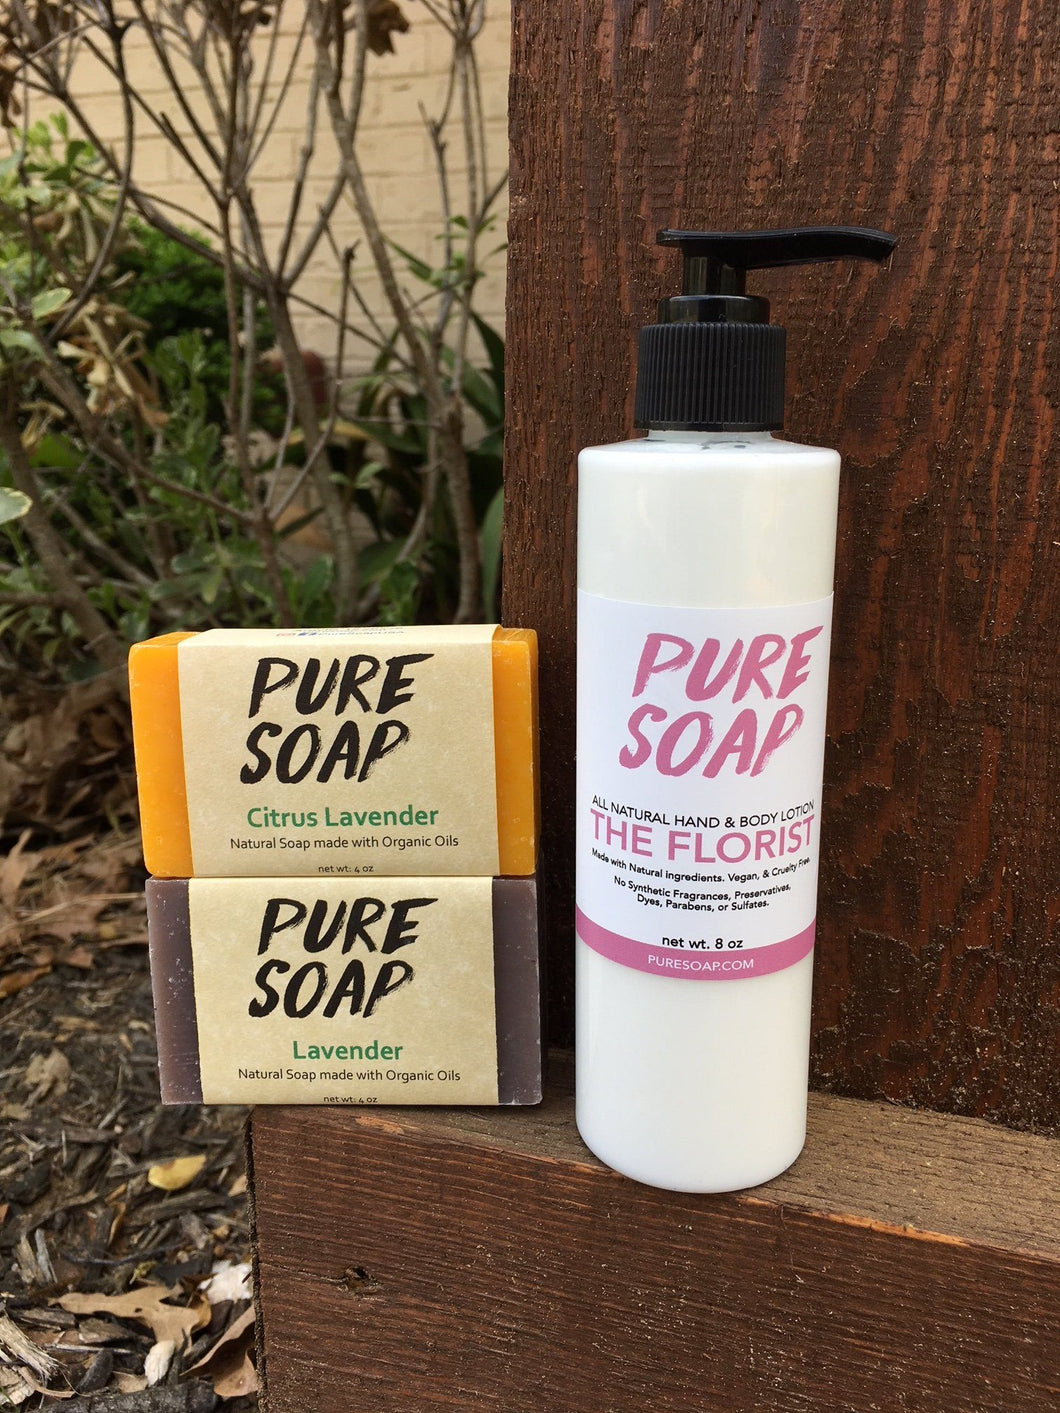 Lotion and Bar Soap Combo Pack